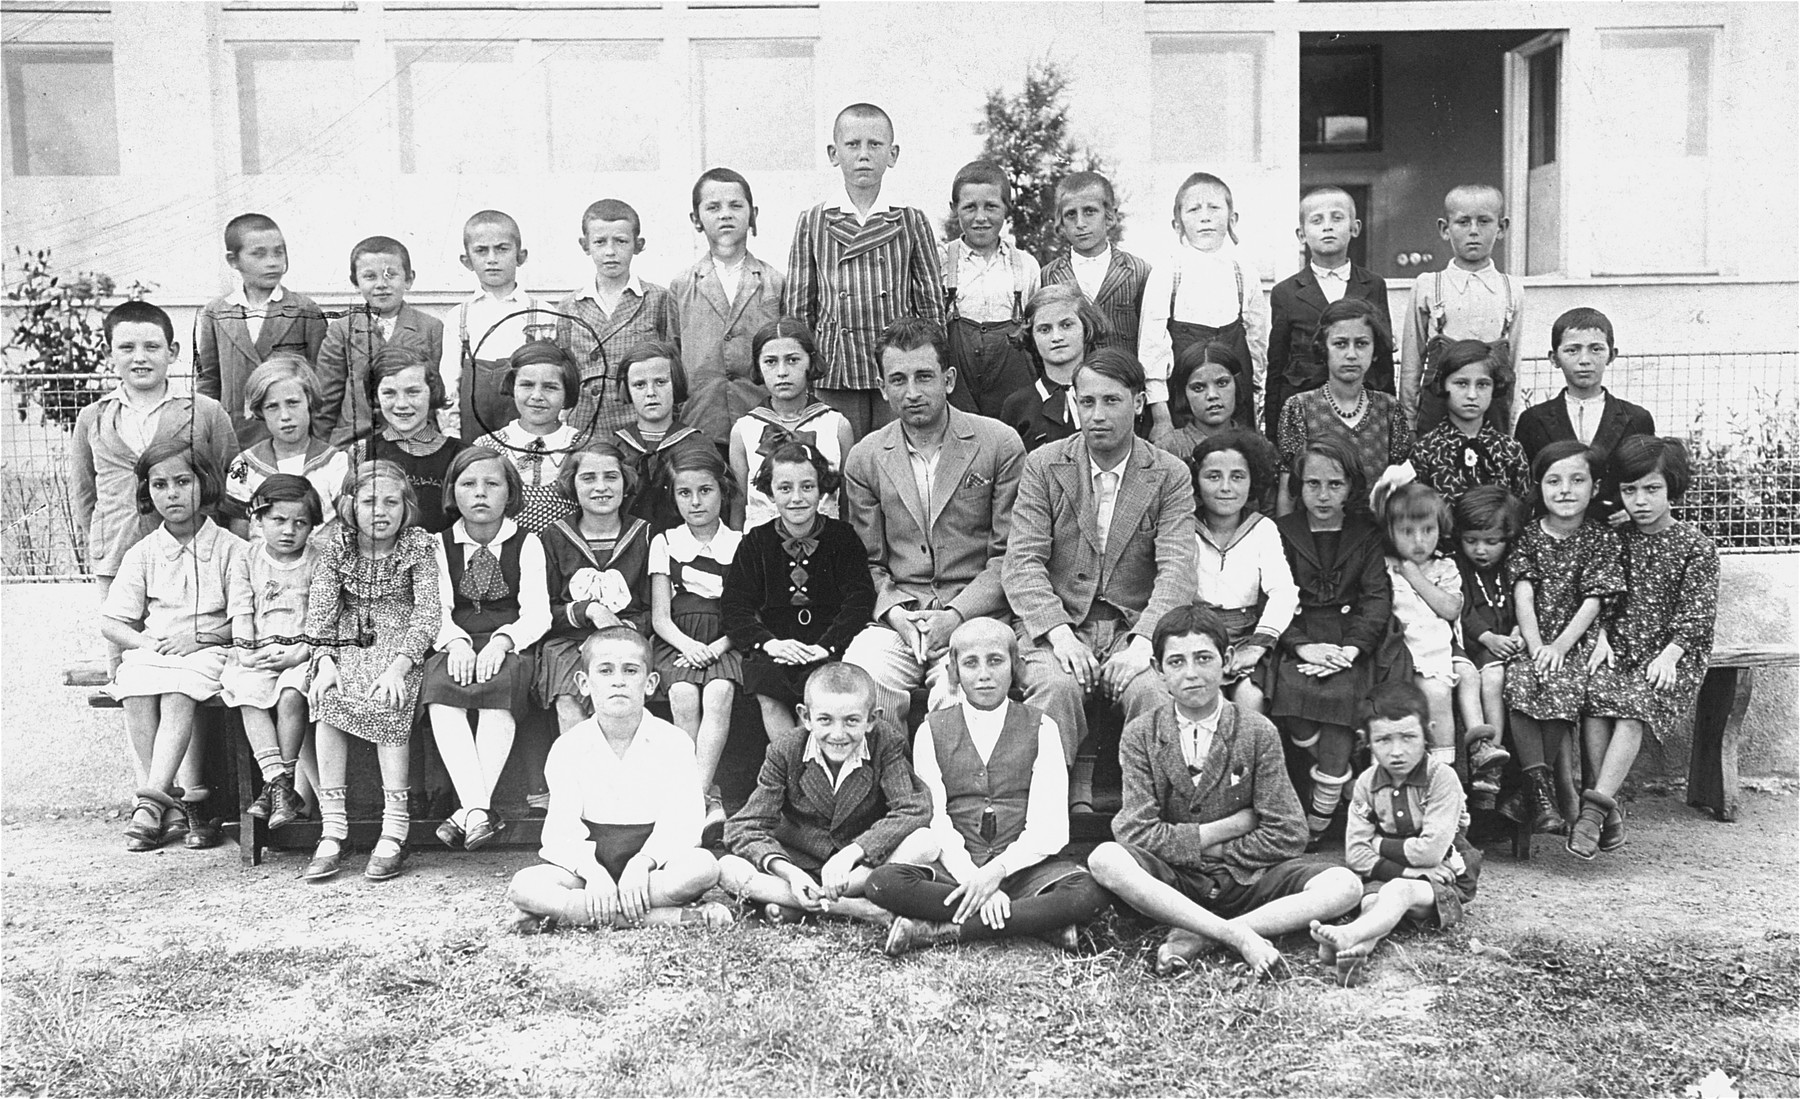 Group portrait of second grade students and teachers at a Czech Jewish school in Vinogradov, Ukraine.    Among those pictured are Edith Rottenstein (second row, second from the left), Dwajri (Deborah) Rottenstein (third row, second from the left), and her cousin Gitta Busch (third row, fourth from the right).  Dwajri is the sister of donor Edith Rottenstein Gross.  Edith survived the Auschwitz and Stutthof concentration camps.  Dwajri perished at the Stutthof concentration camp.  Gitta was shot and killed by a German soldier in 1945.  The boy in the back row, eighth from the left, may be Isidor Goldberger.